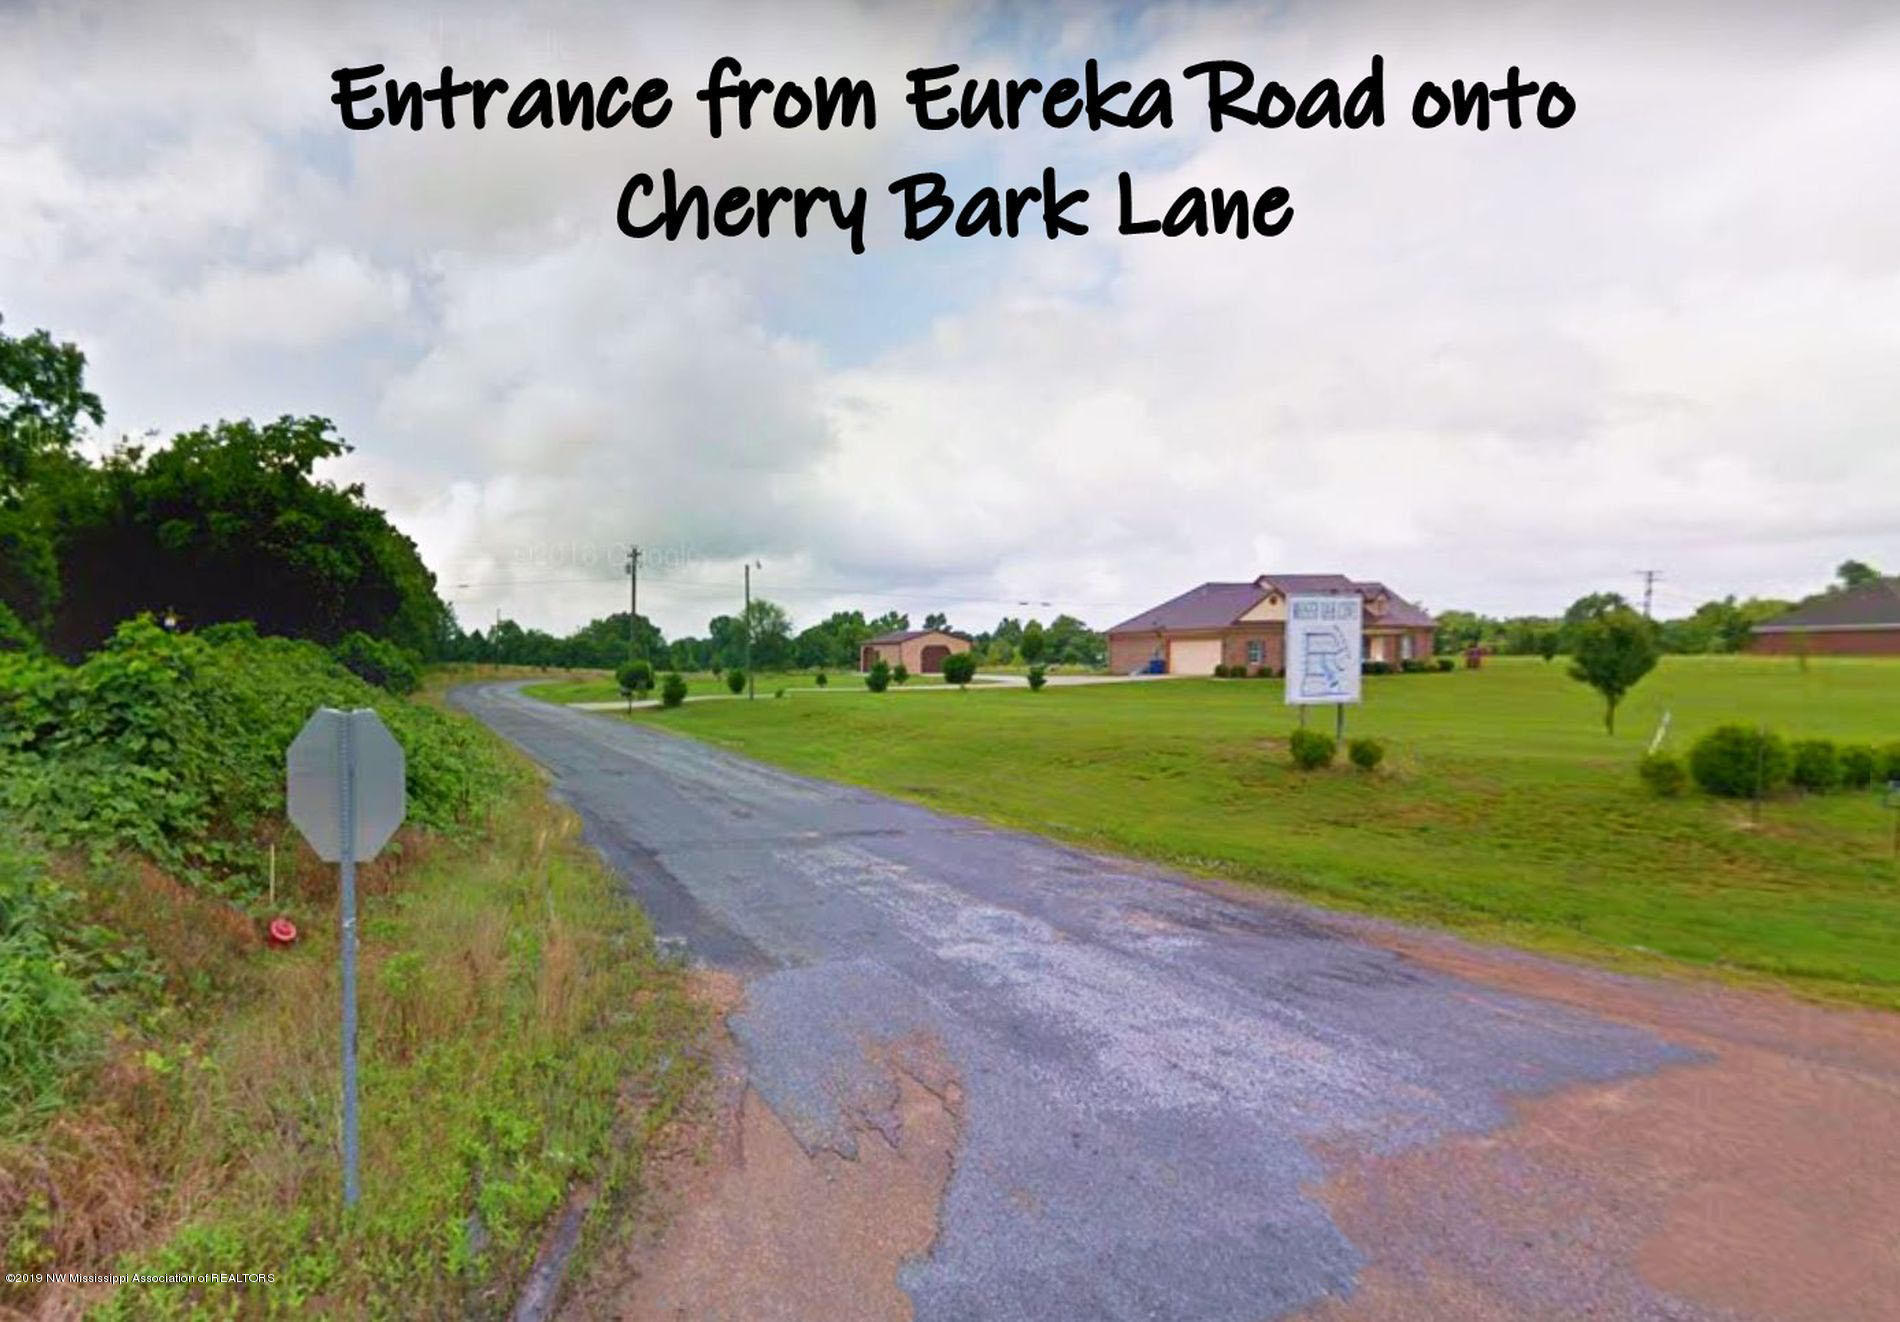 entrance from Eureka Rd.